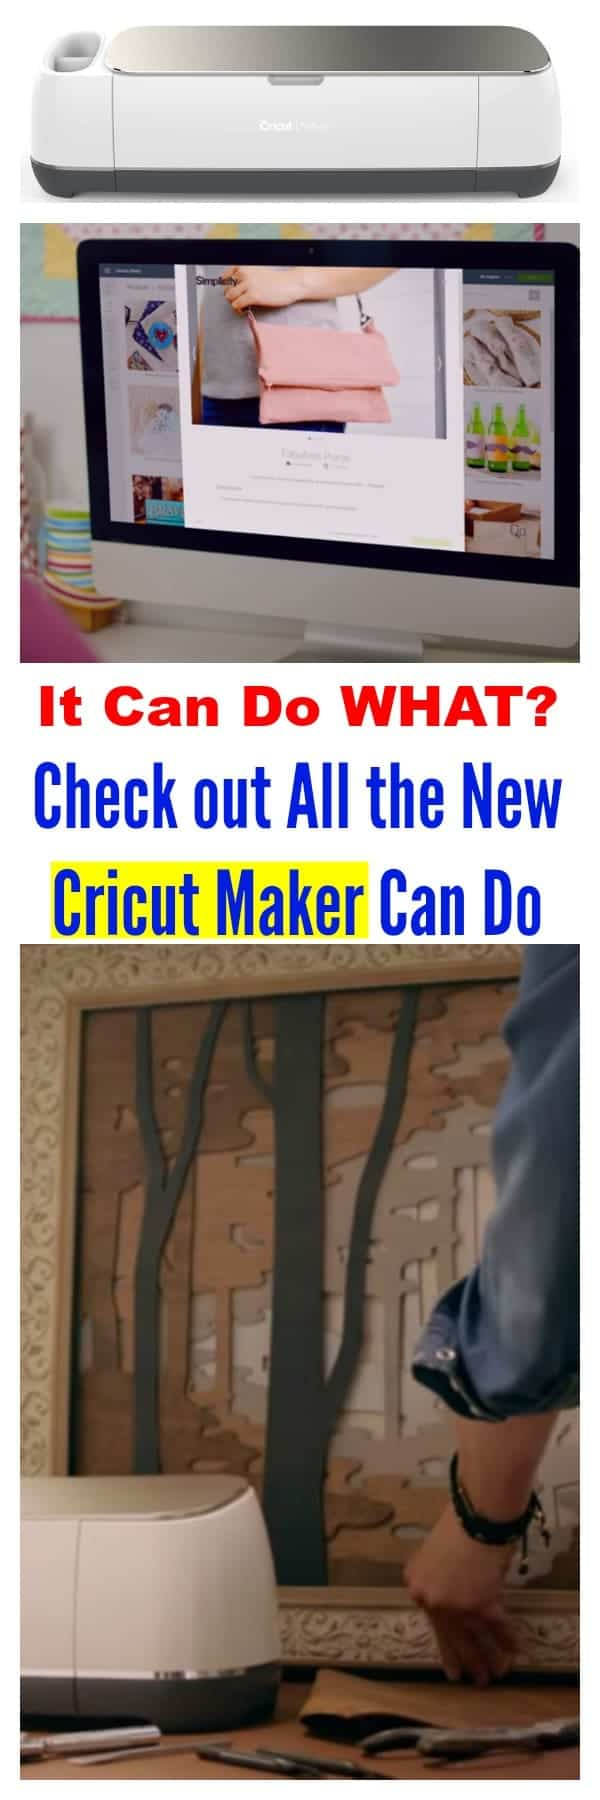 Check out all the new Cricut Maker can do